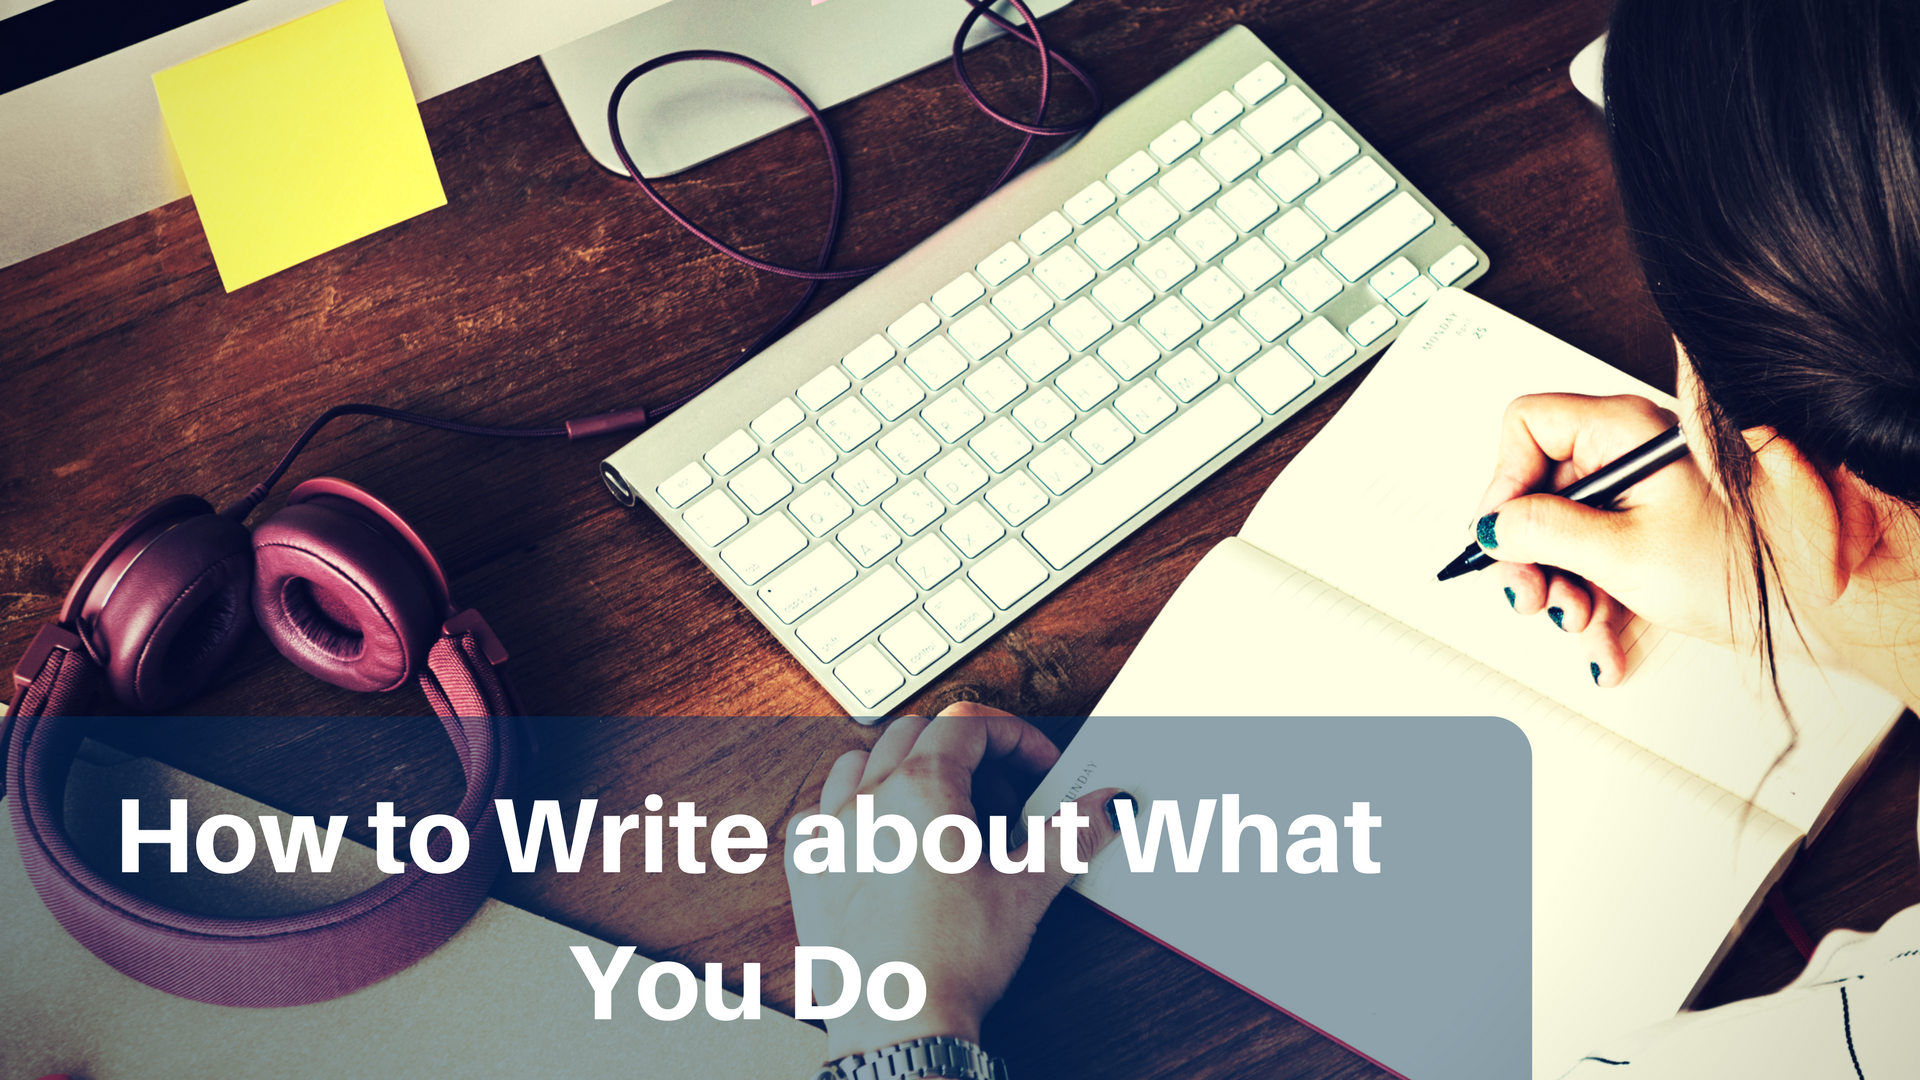 How to Write about What You Do